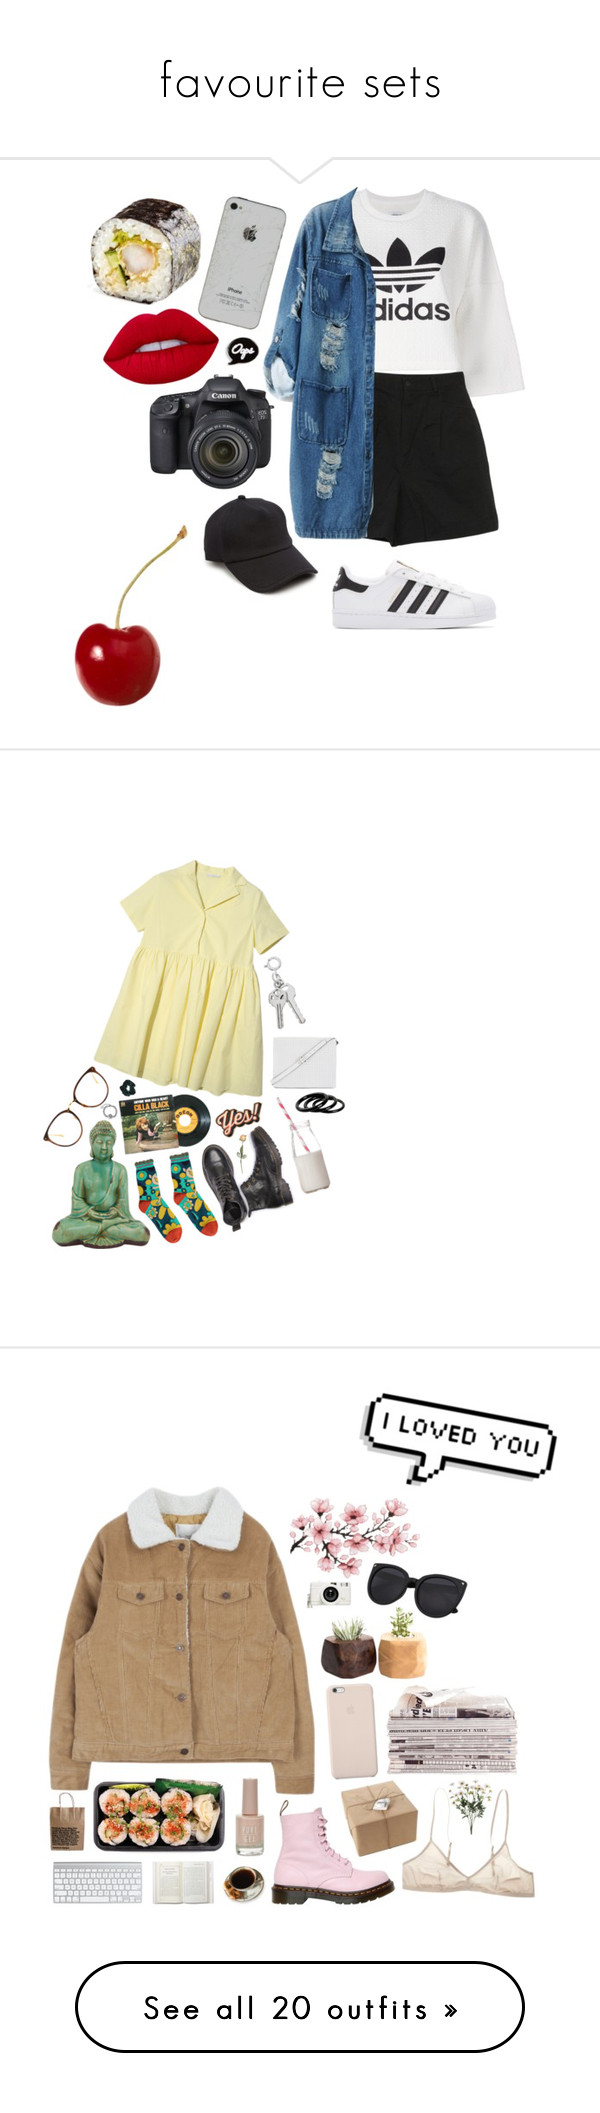 """""""favourite sets"""" by annnnnnnnnn ❤ liked on Polyvore featuring Lime Crime, rag & bone, adidas Originals, Chicnova Fashion, Eos, Topshop, Limedrop, Anya Hindmarch, Dress My Cupcake and BCBGMAXAZRIA"""